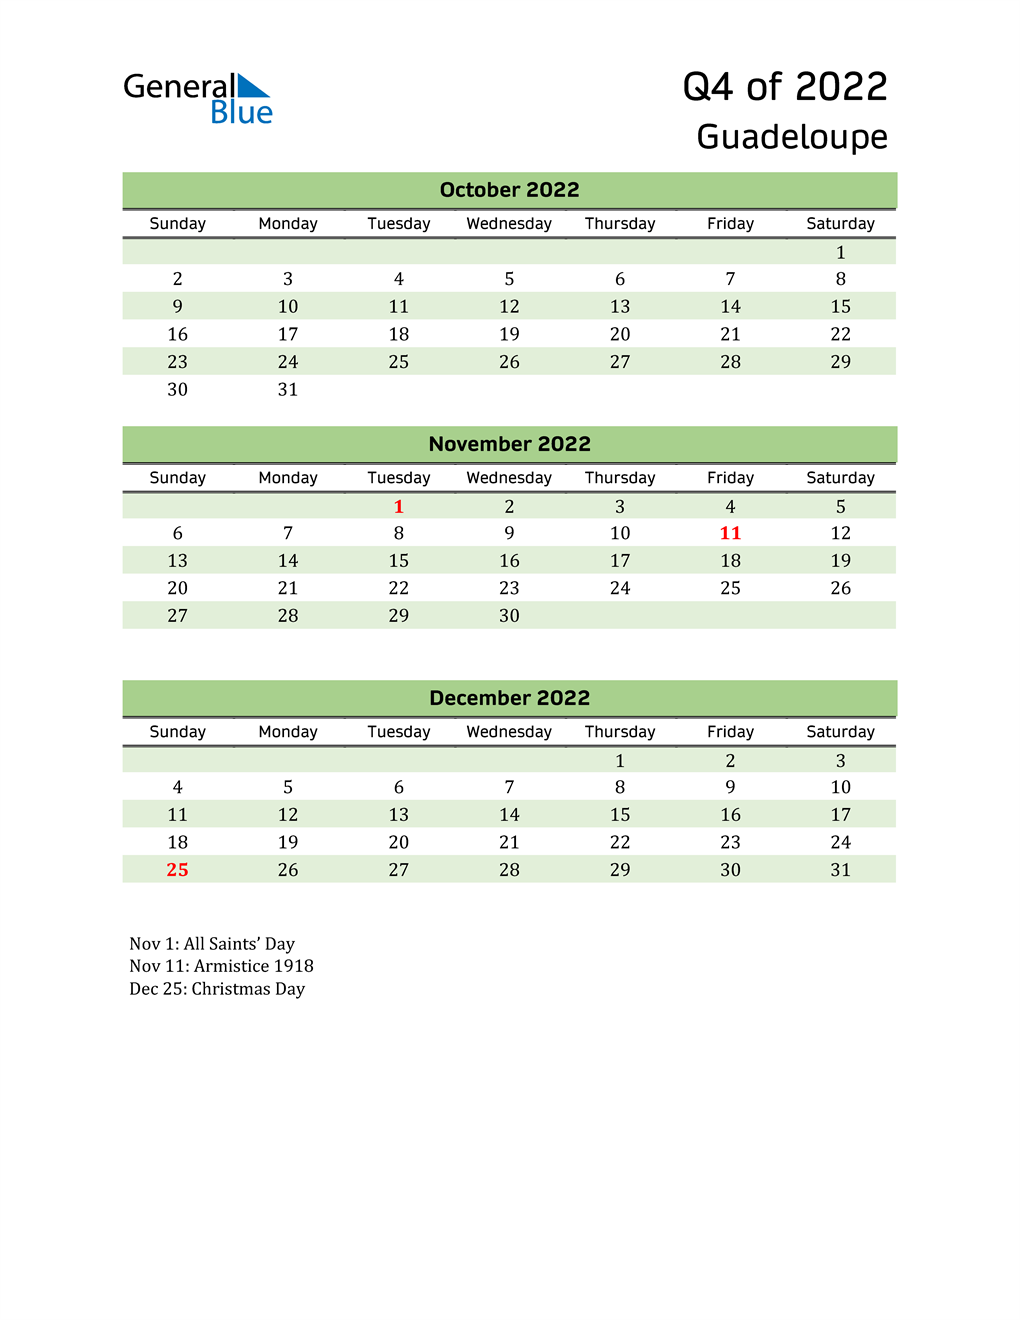 Quarterly Calendar 2022 with Guadeloupe Holidays